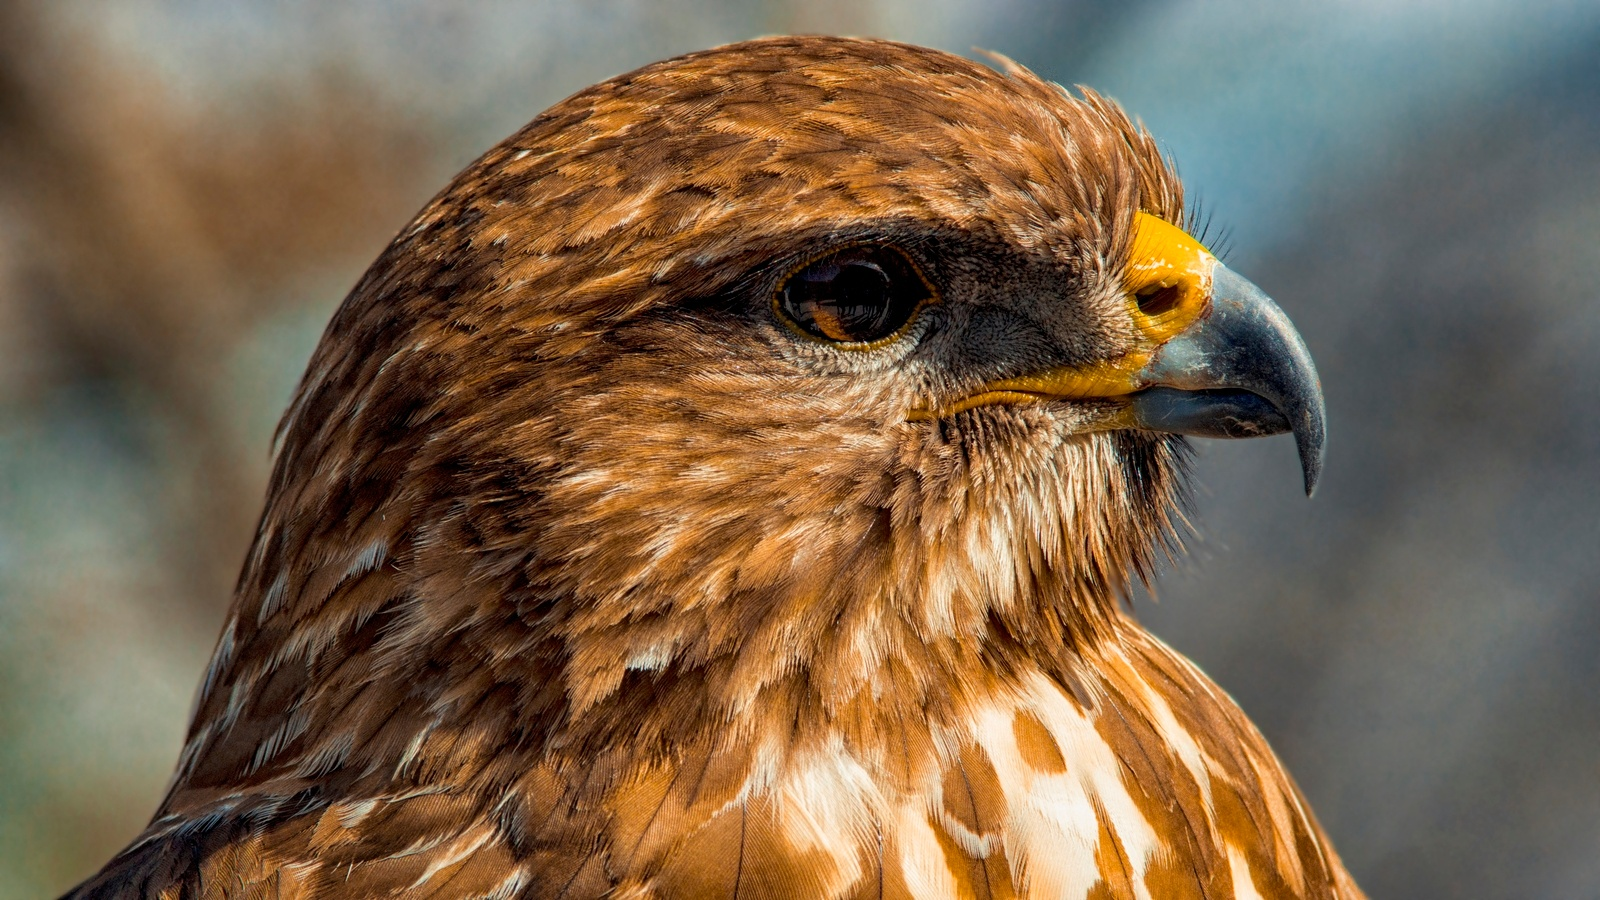 Buzzard portrait by Tamas Filep